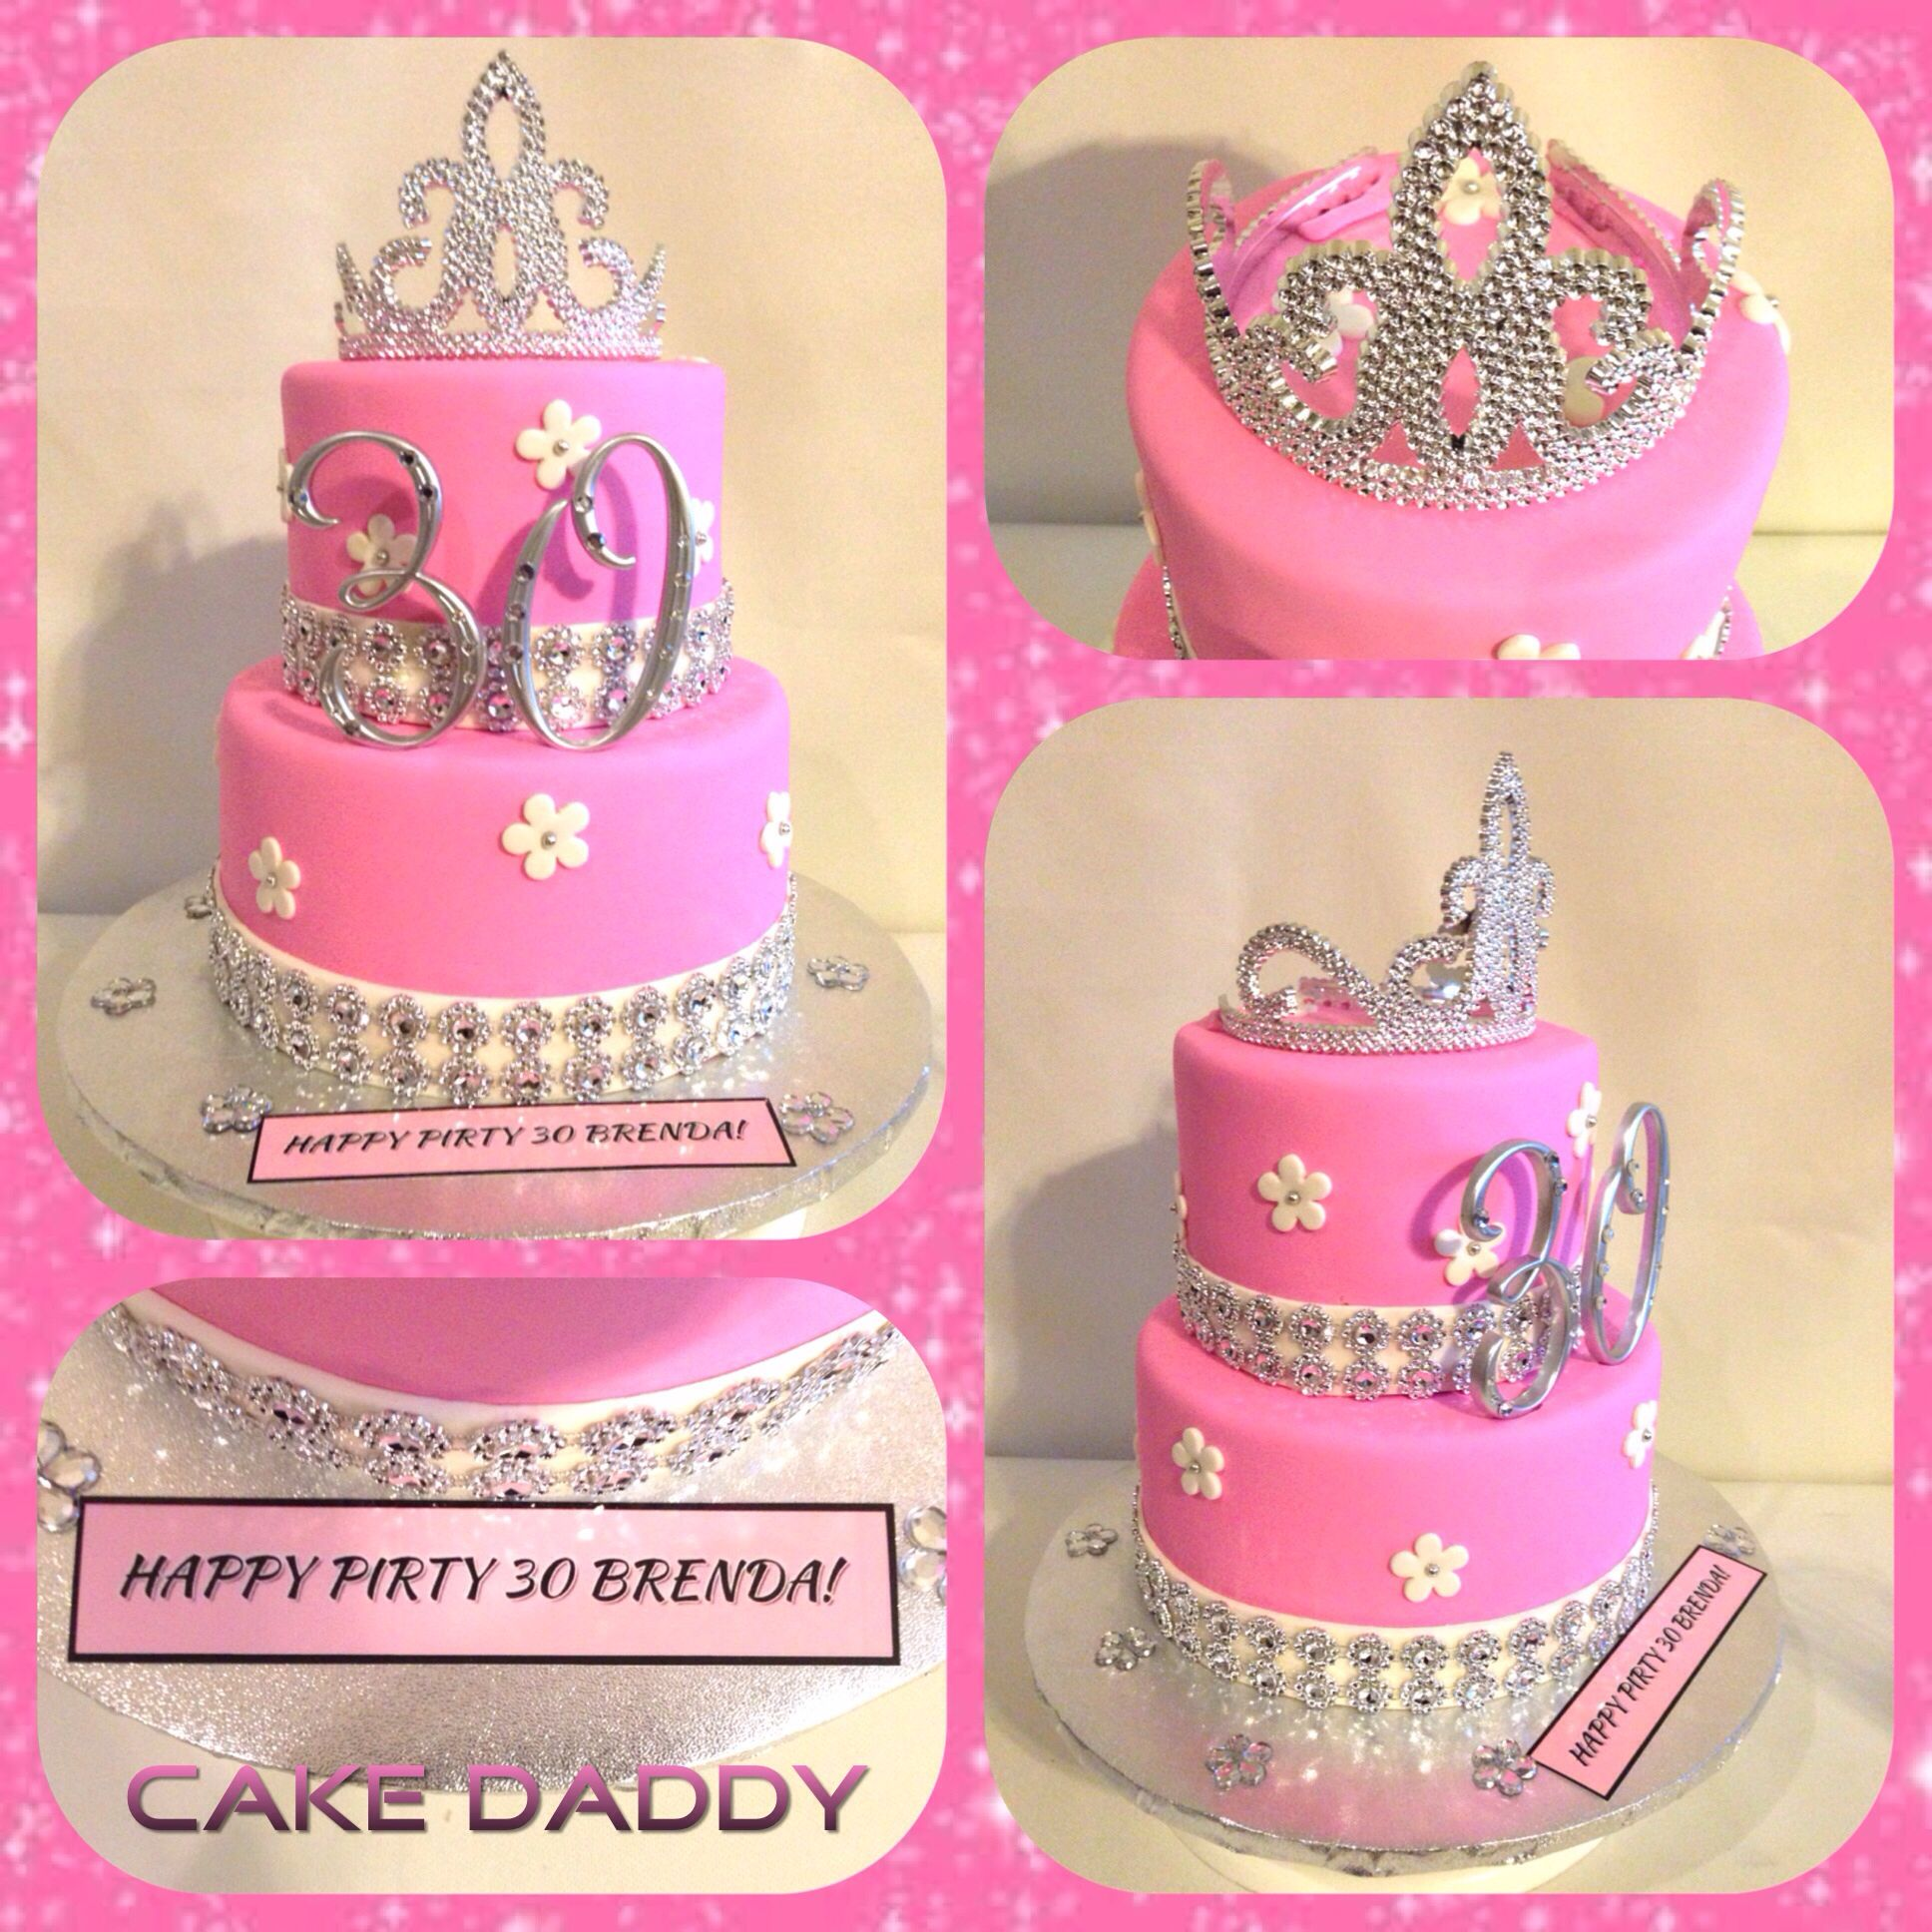 Pink and bling 30th birthday cake